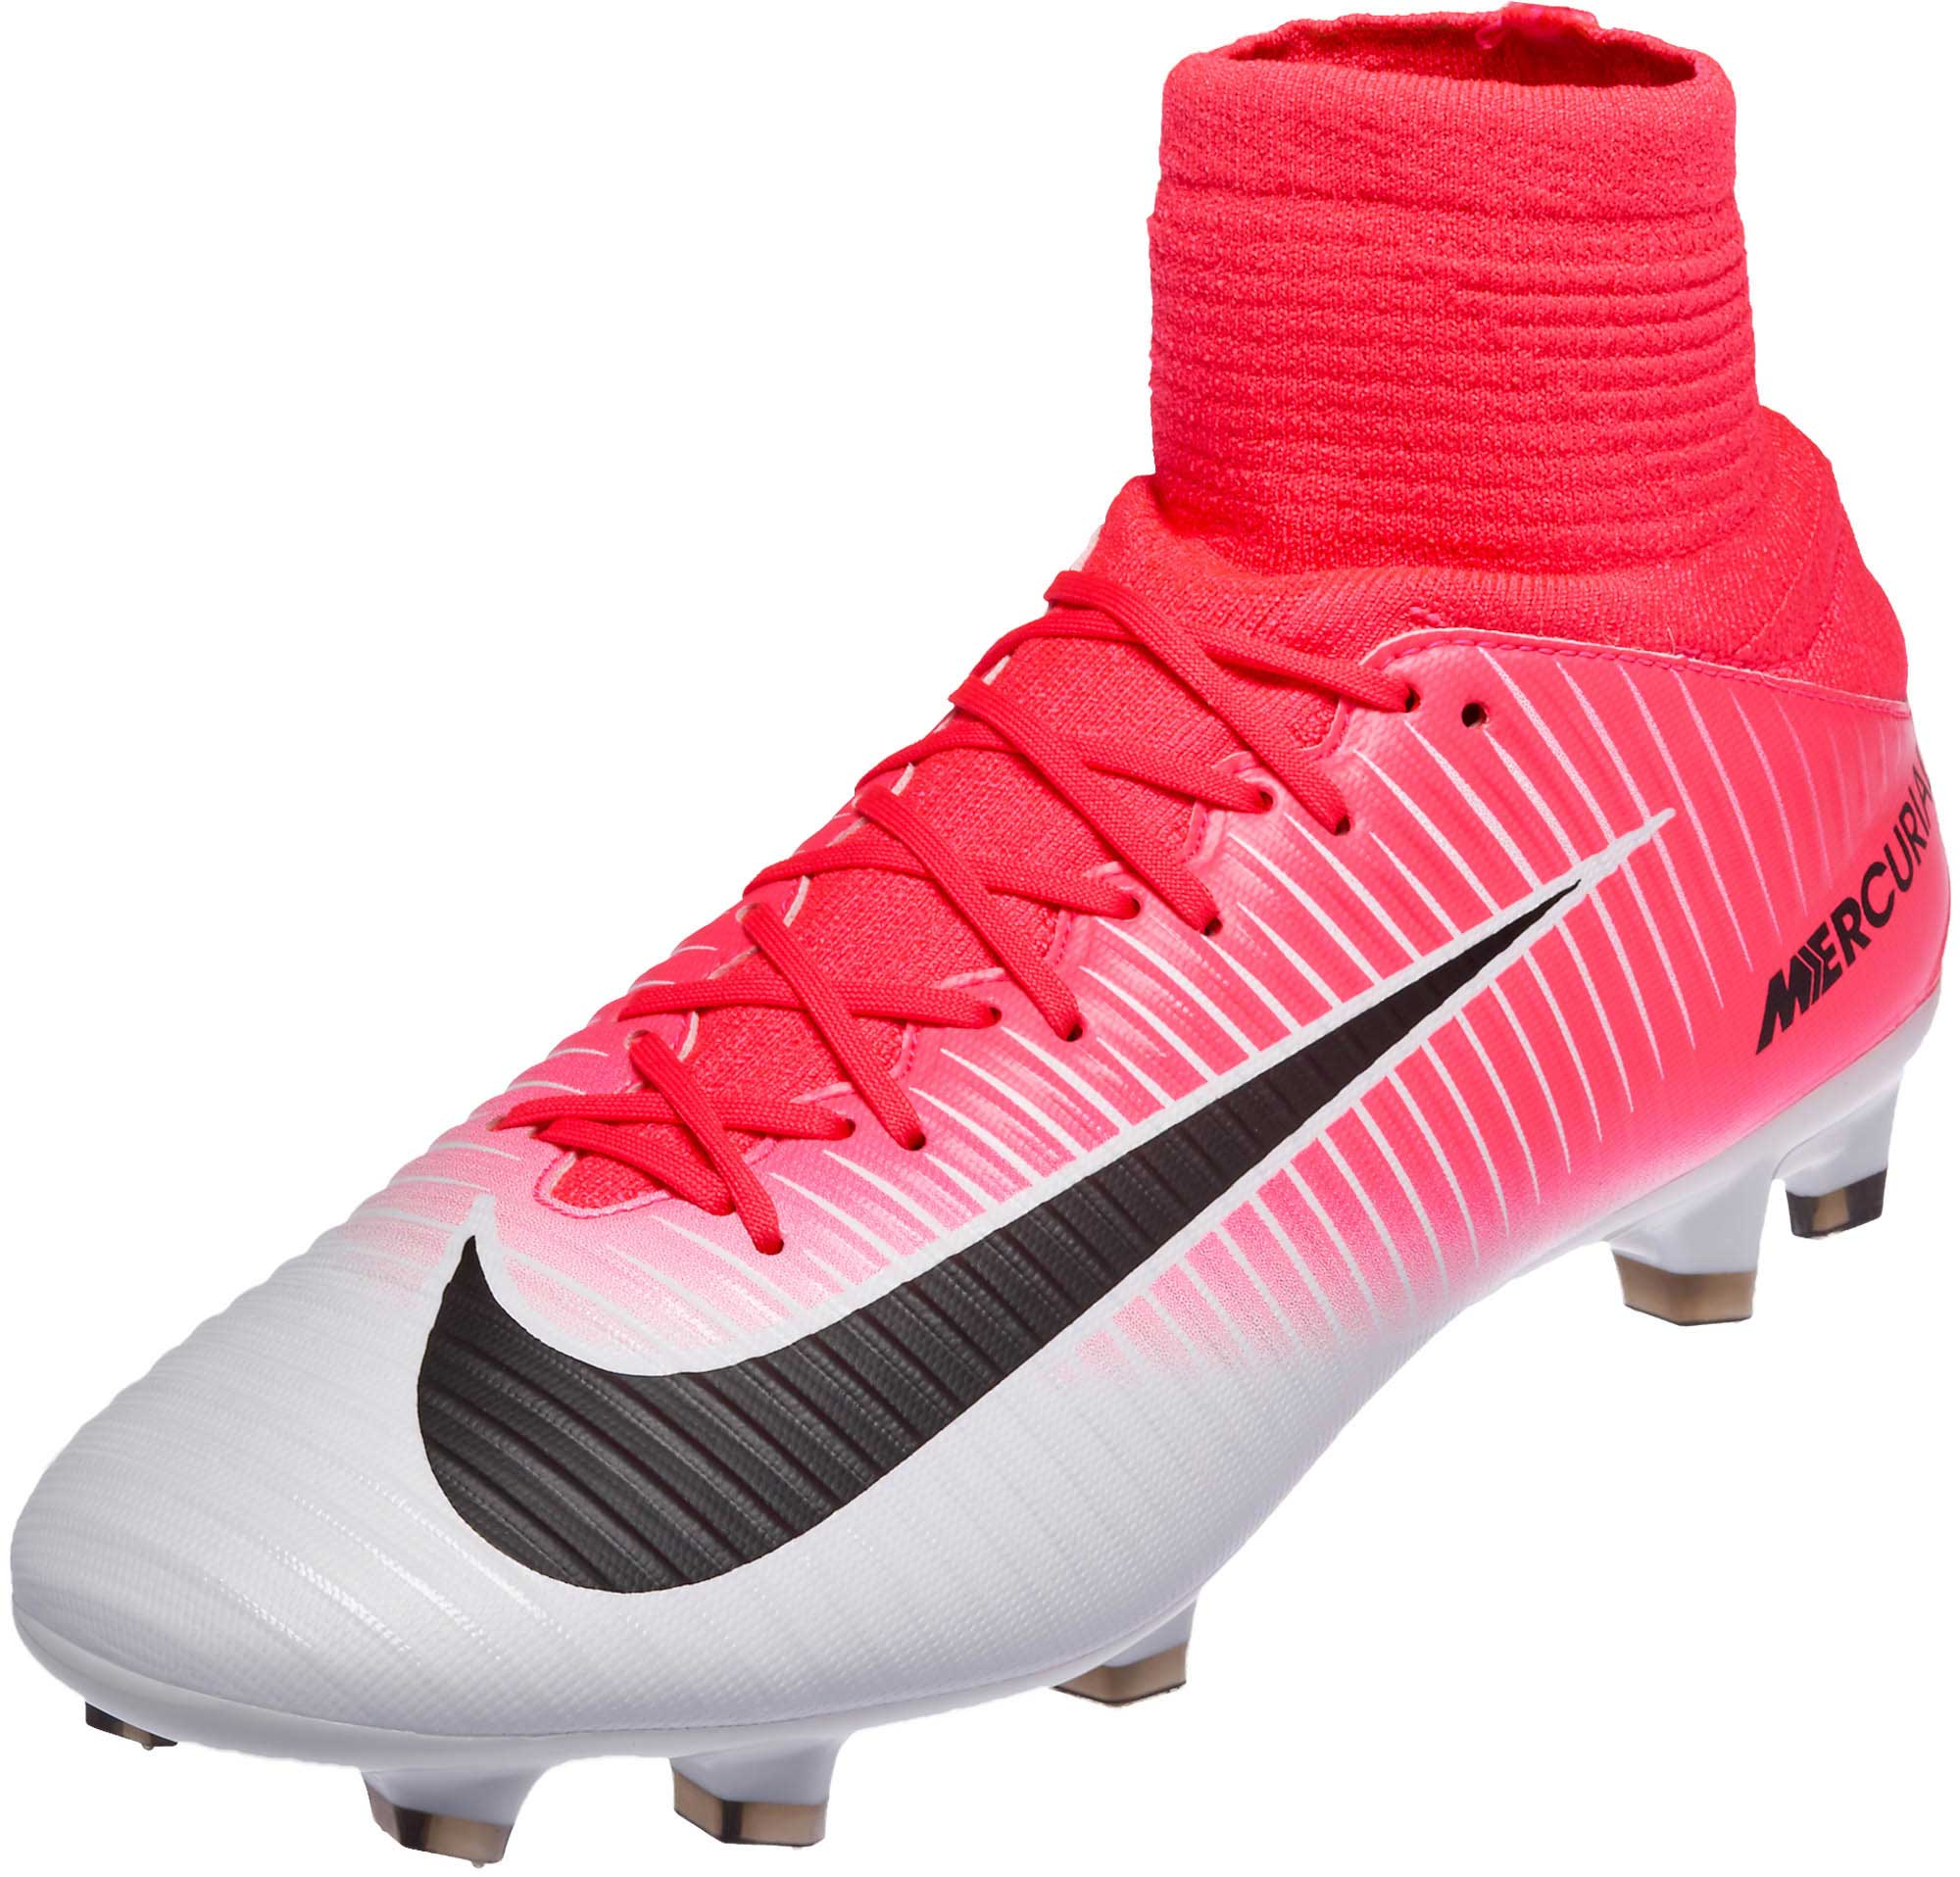 nike mercurial veloce lll fg pink soccer cleats